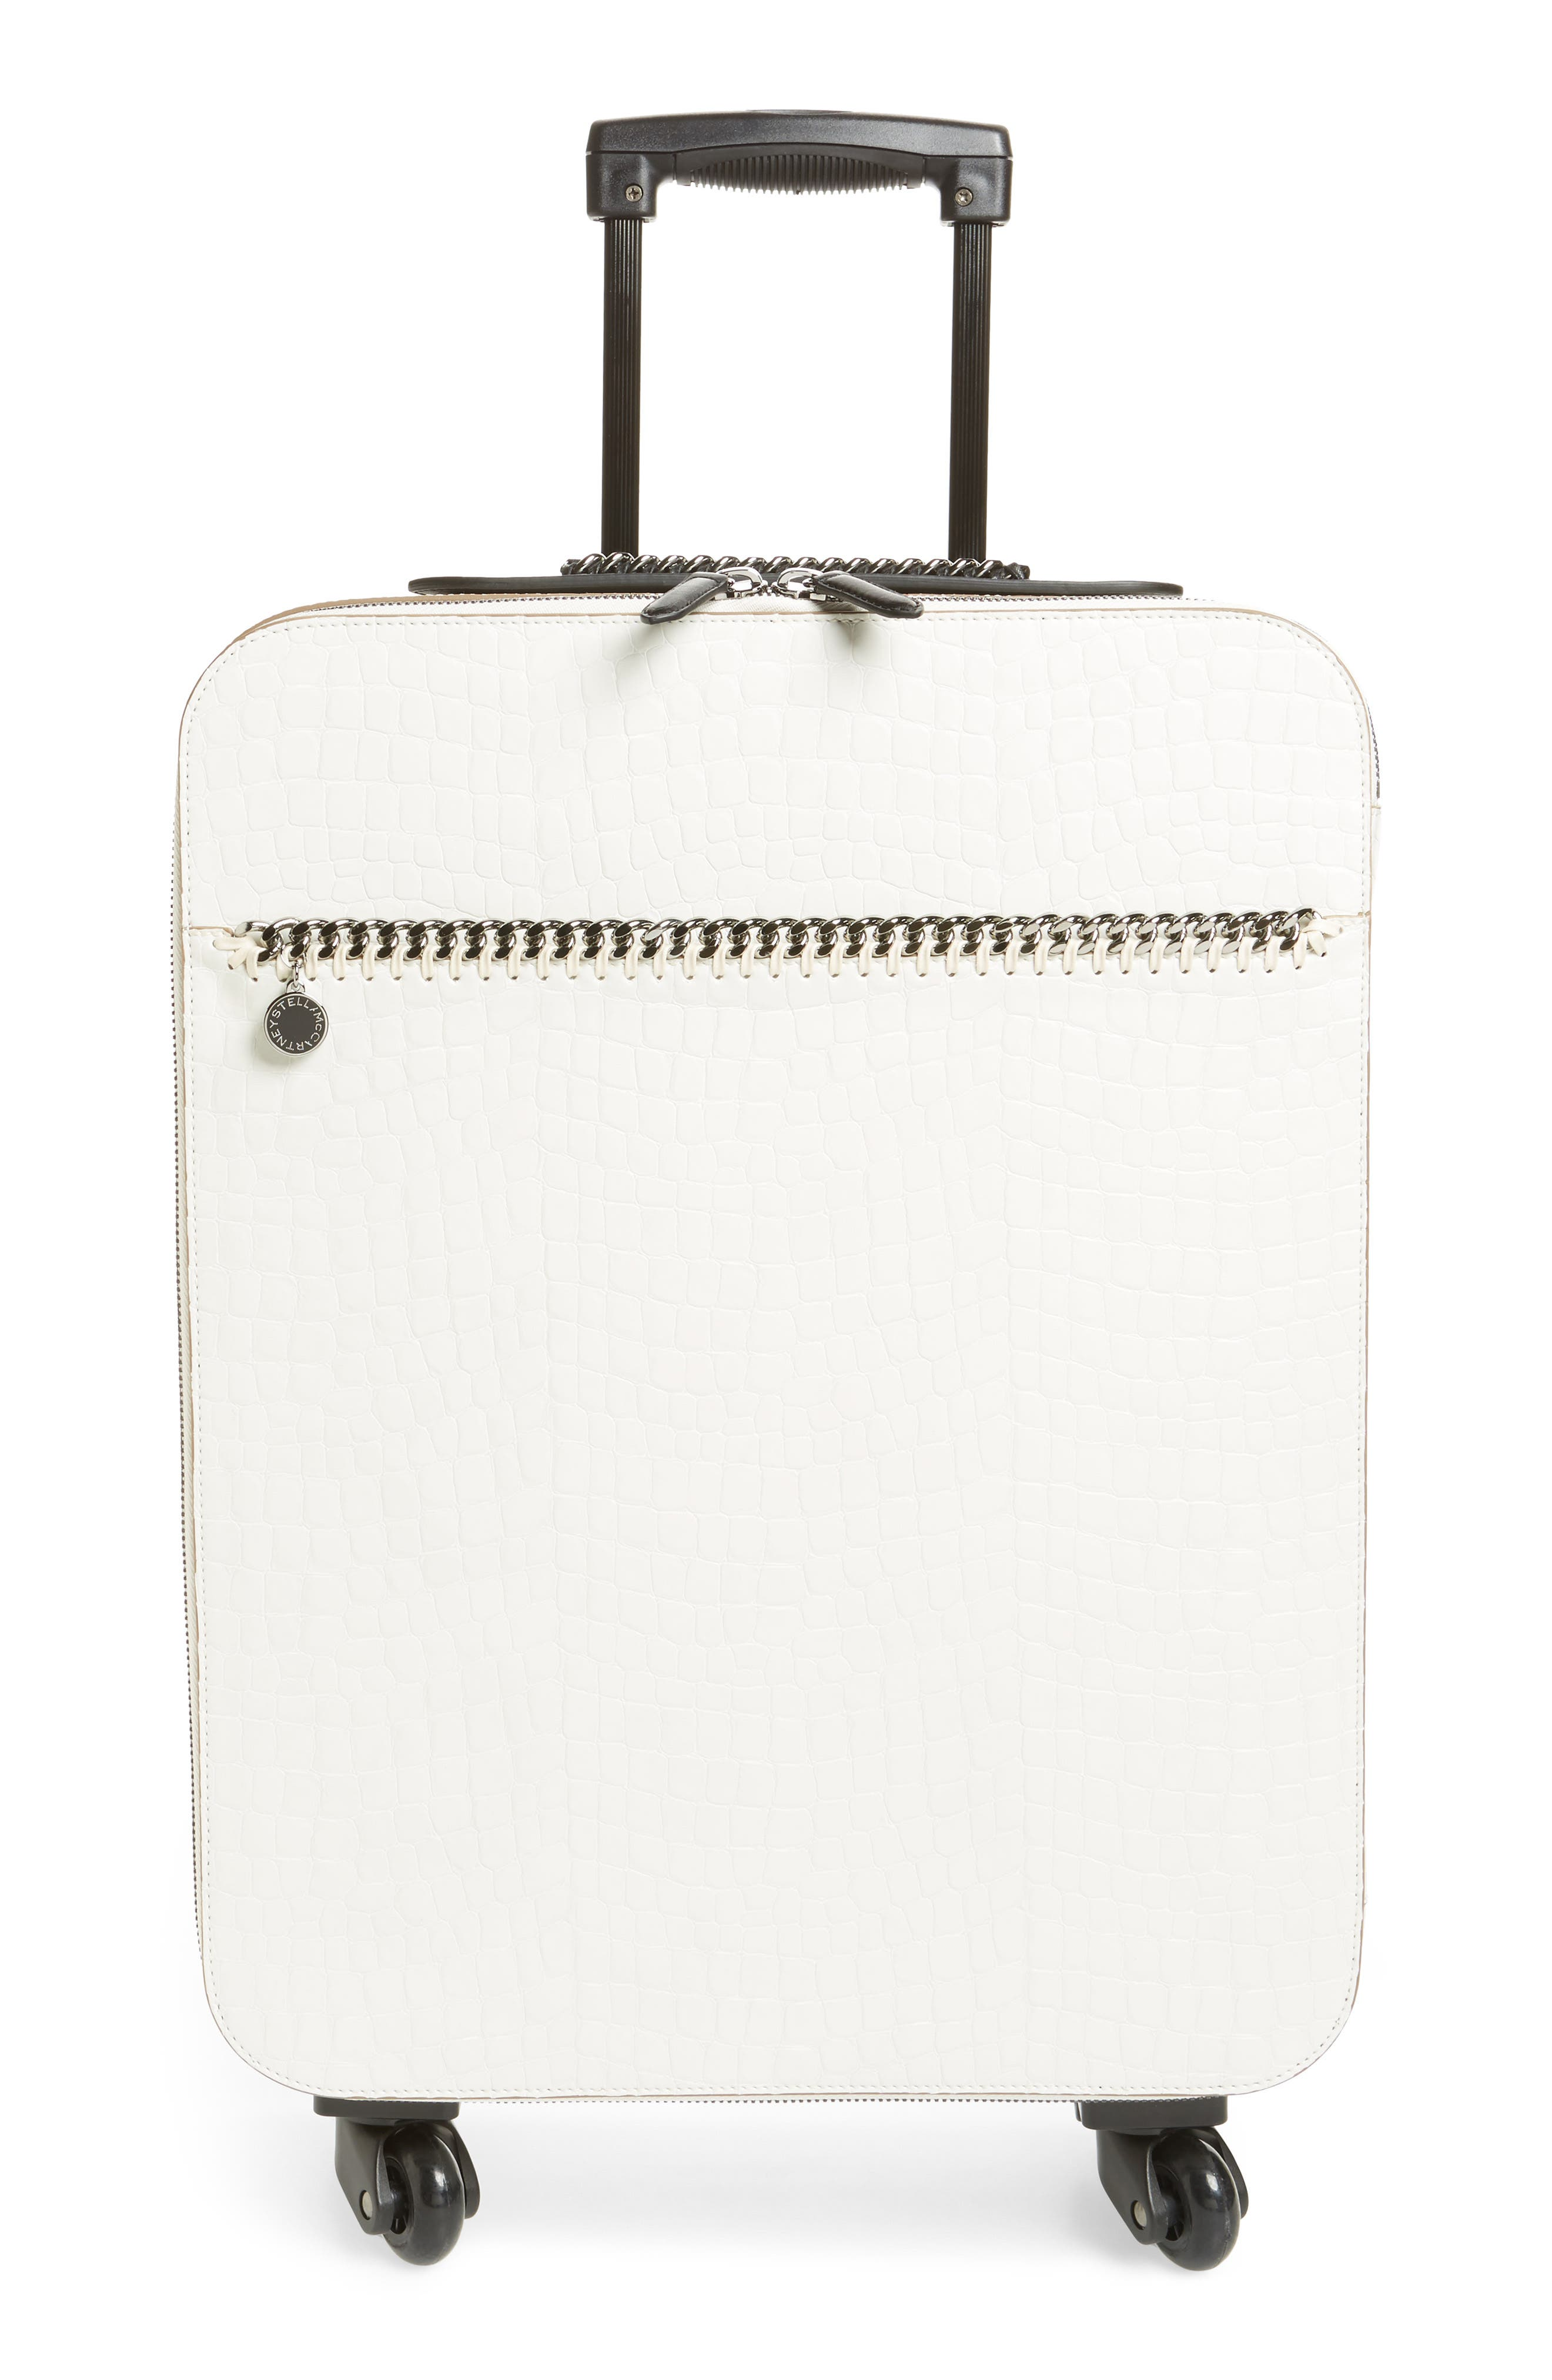 20-Inch Alter Croc Faux Leather Trolley Case,                         Main,                         color, 900